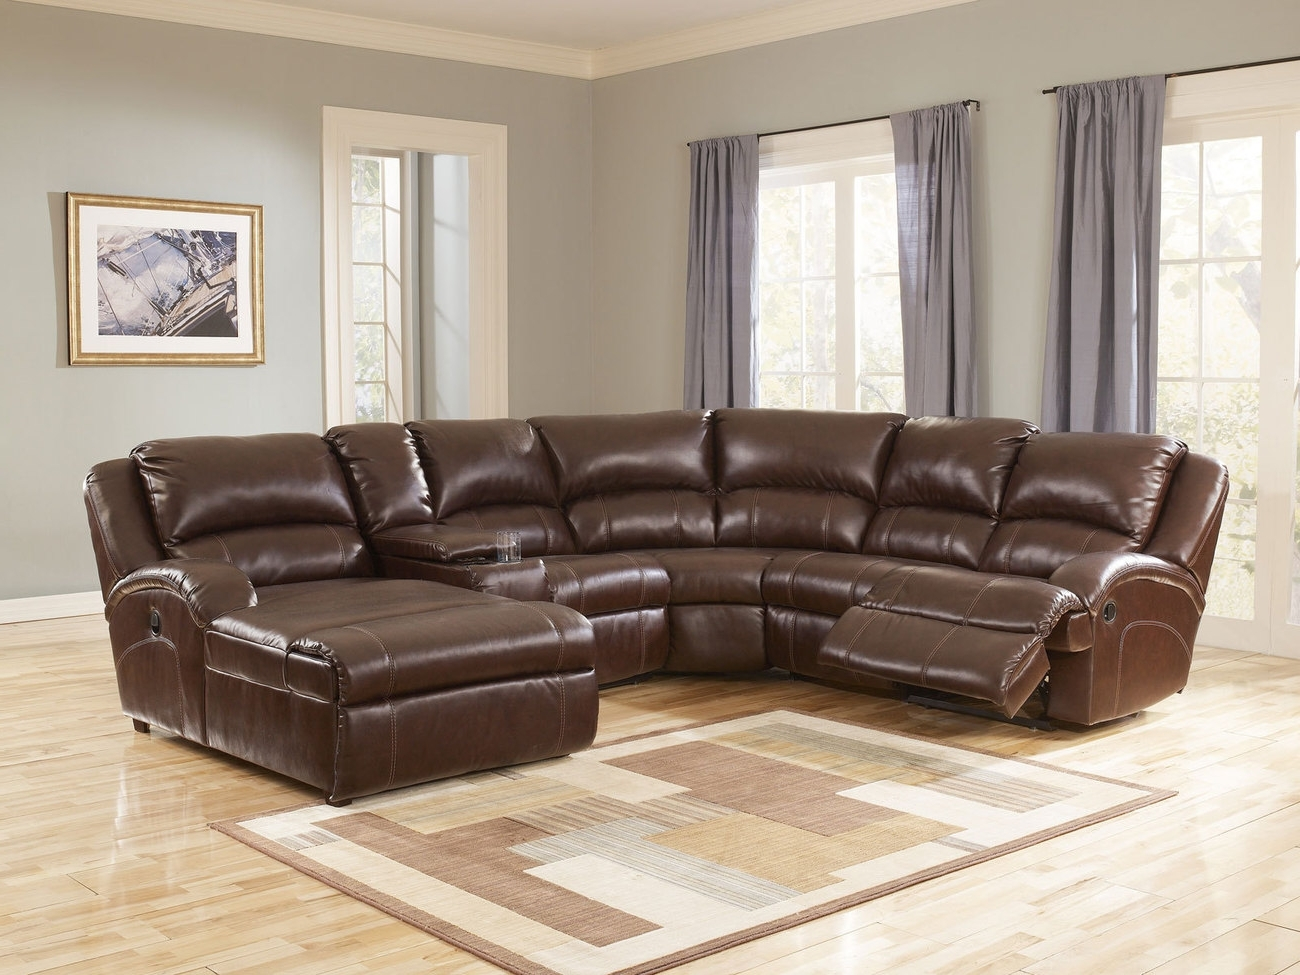 Most Current Sectional Sofas In Toronto Pertaining To Modern Sectional Sofas Toronto – Fjellkjeden (View 3 of 15)